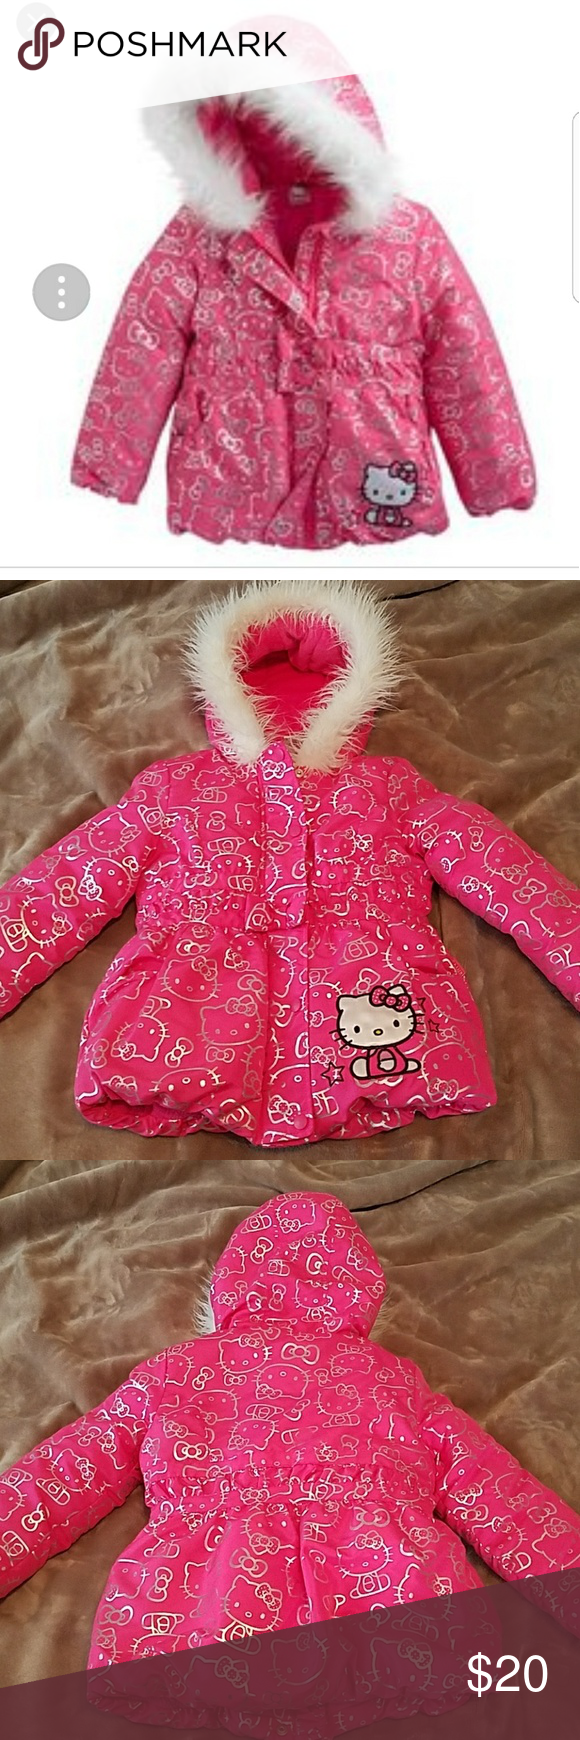 77839dec6 Kids Pink Hello Kitty puffer coat, size 4 Like New Hello Kitty puffer coat,  size 4, pink with silver decals and fur-lined hood. Warm fleece lined  inside.